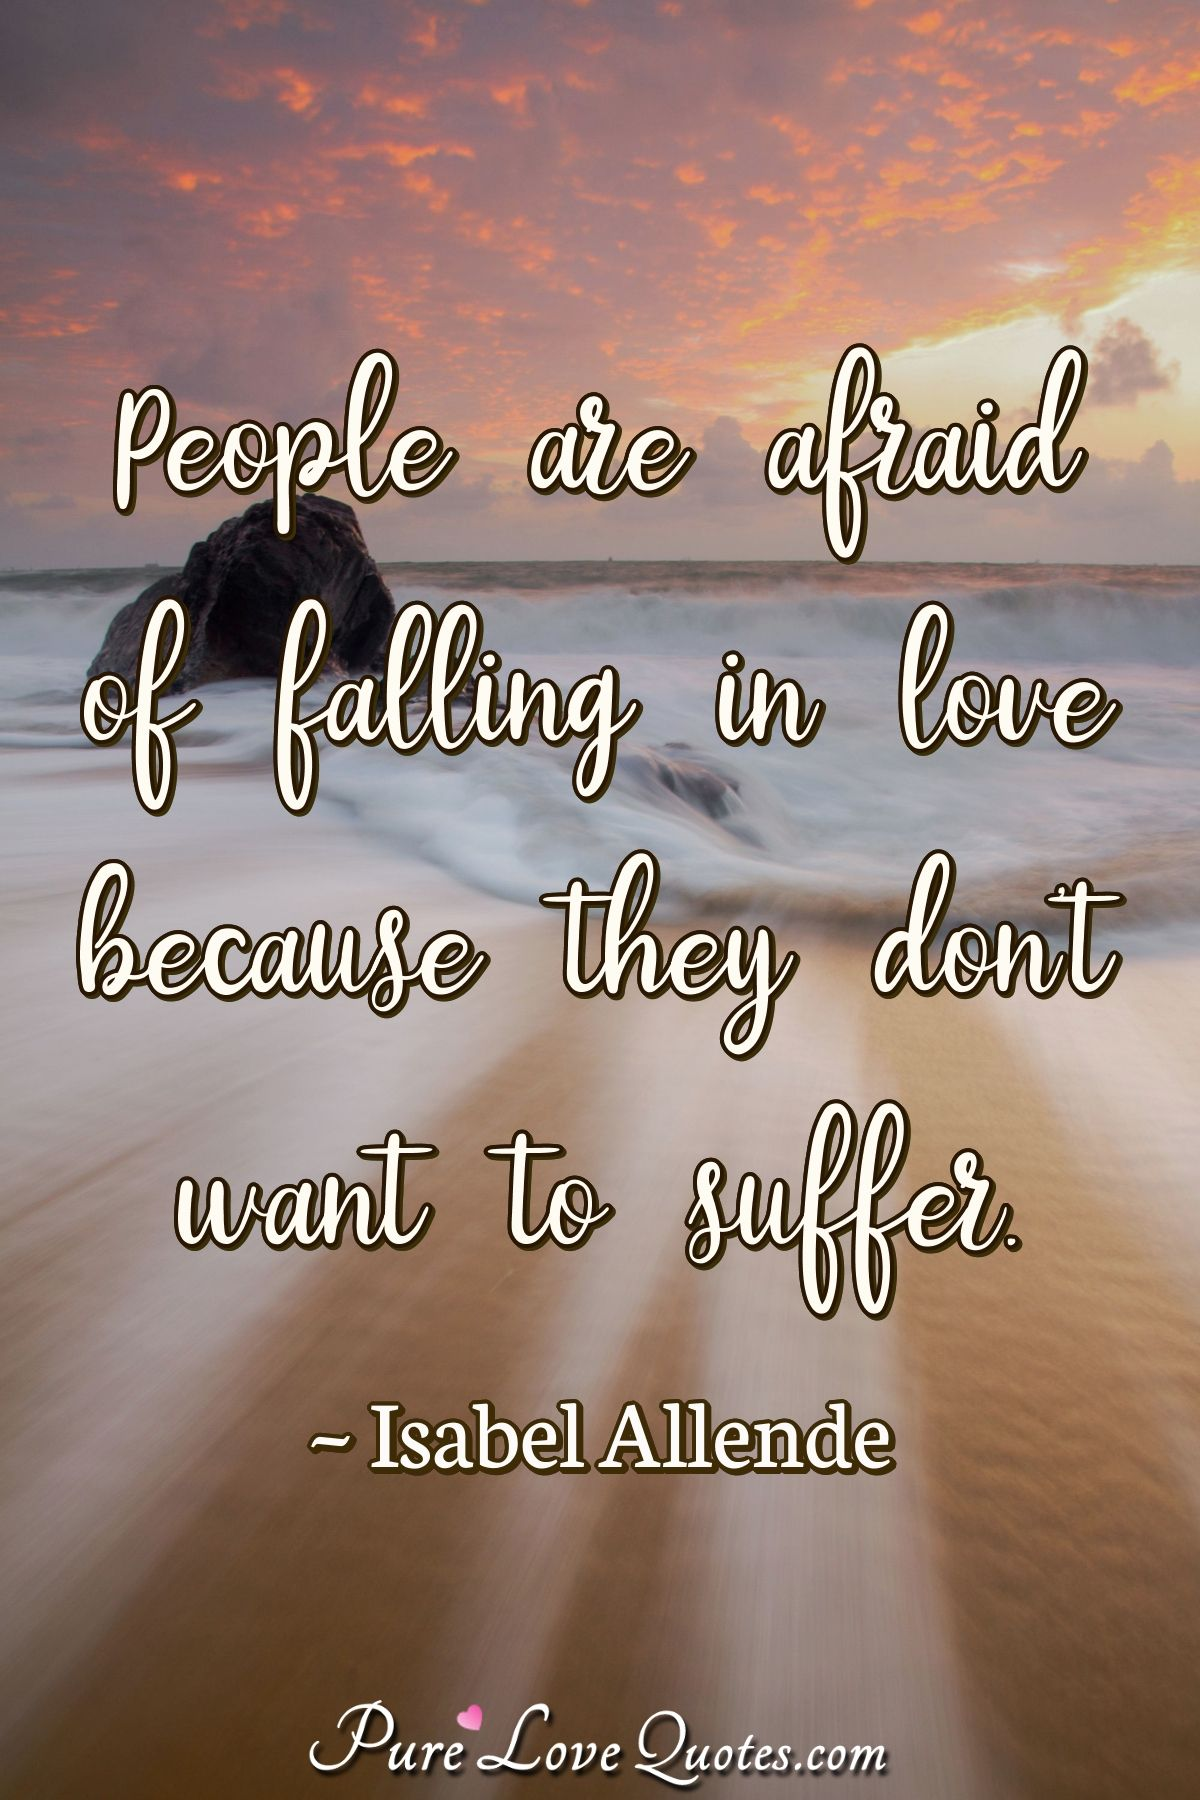 People are afraid of falling in love because they don't want to suffer. - Isabel Allende